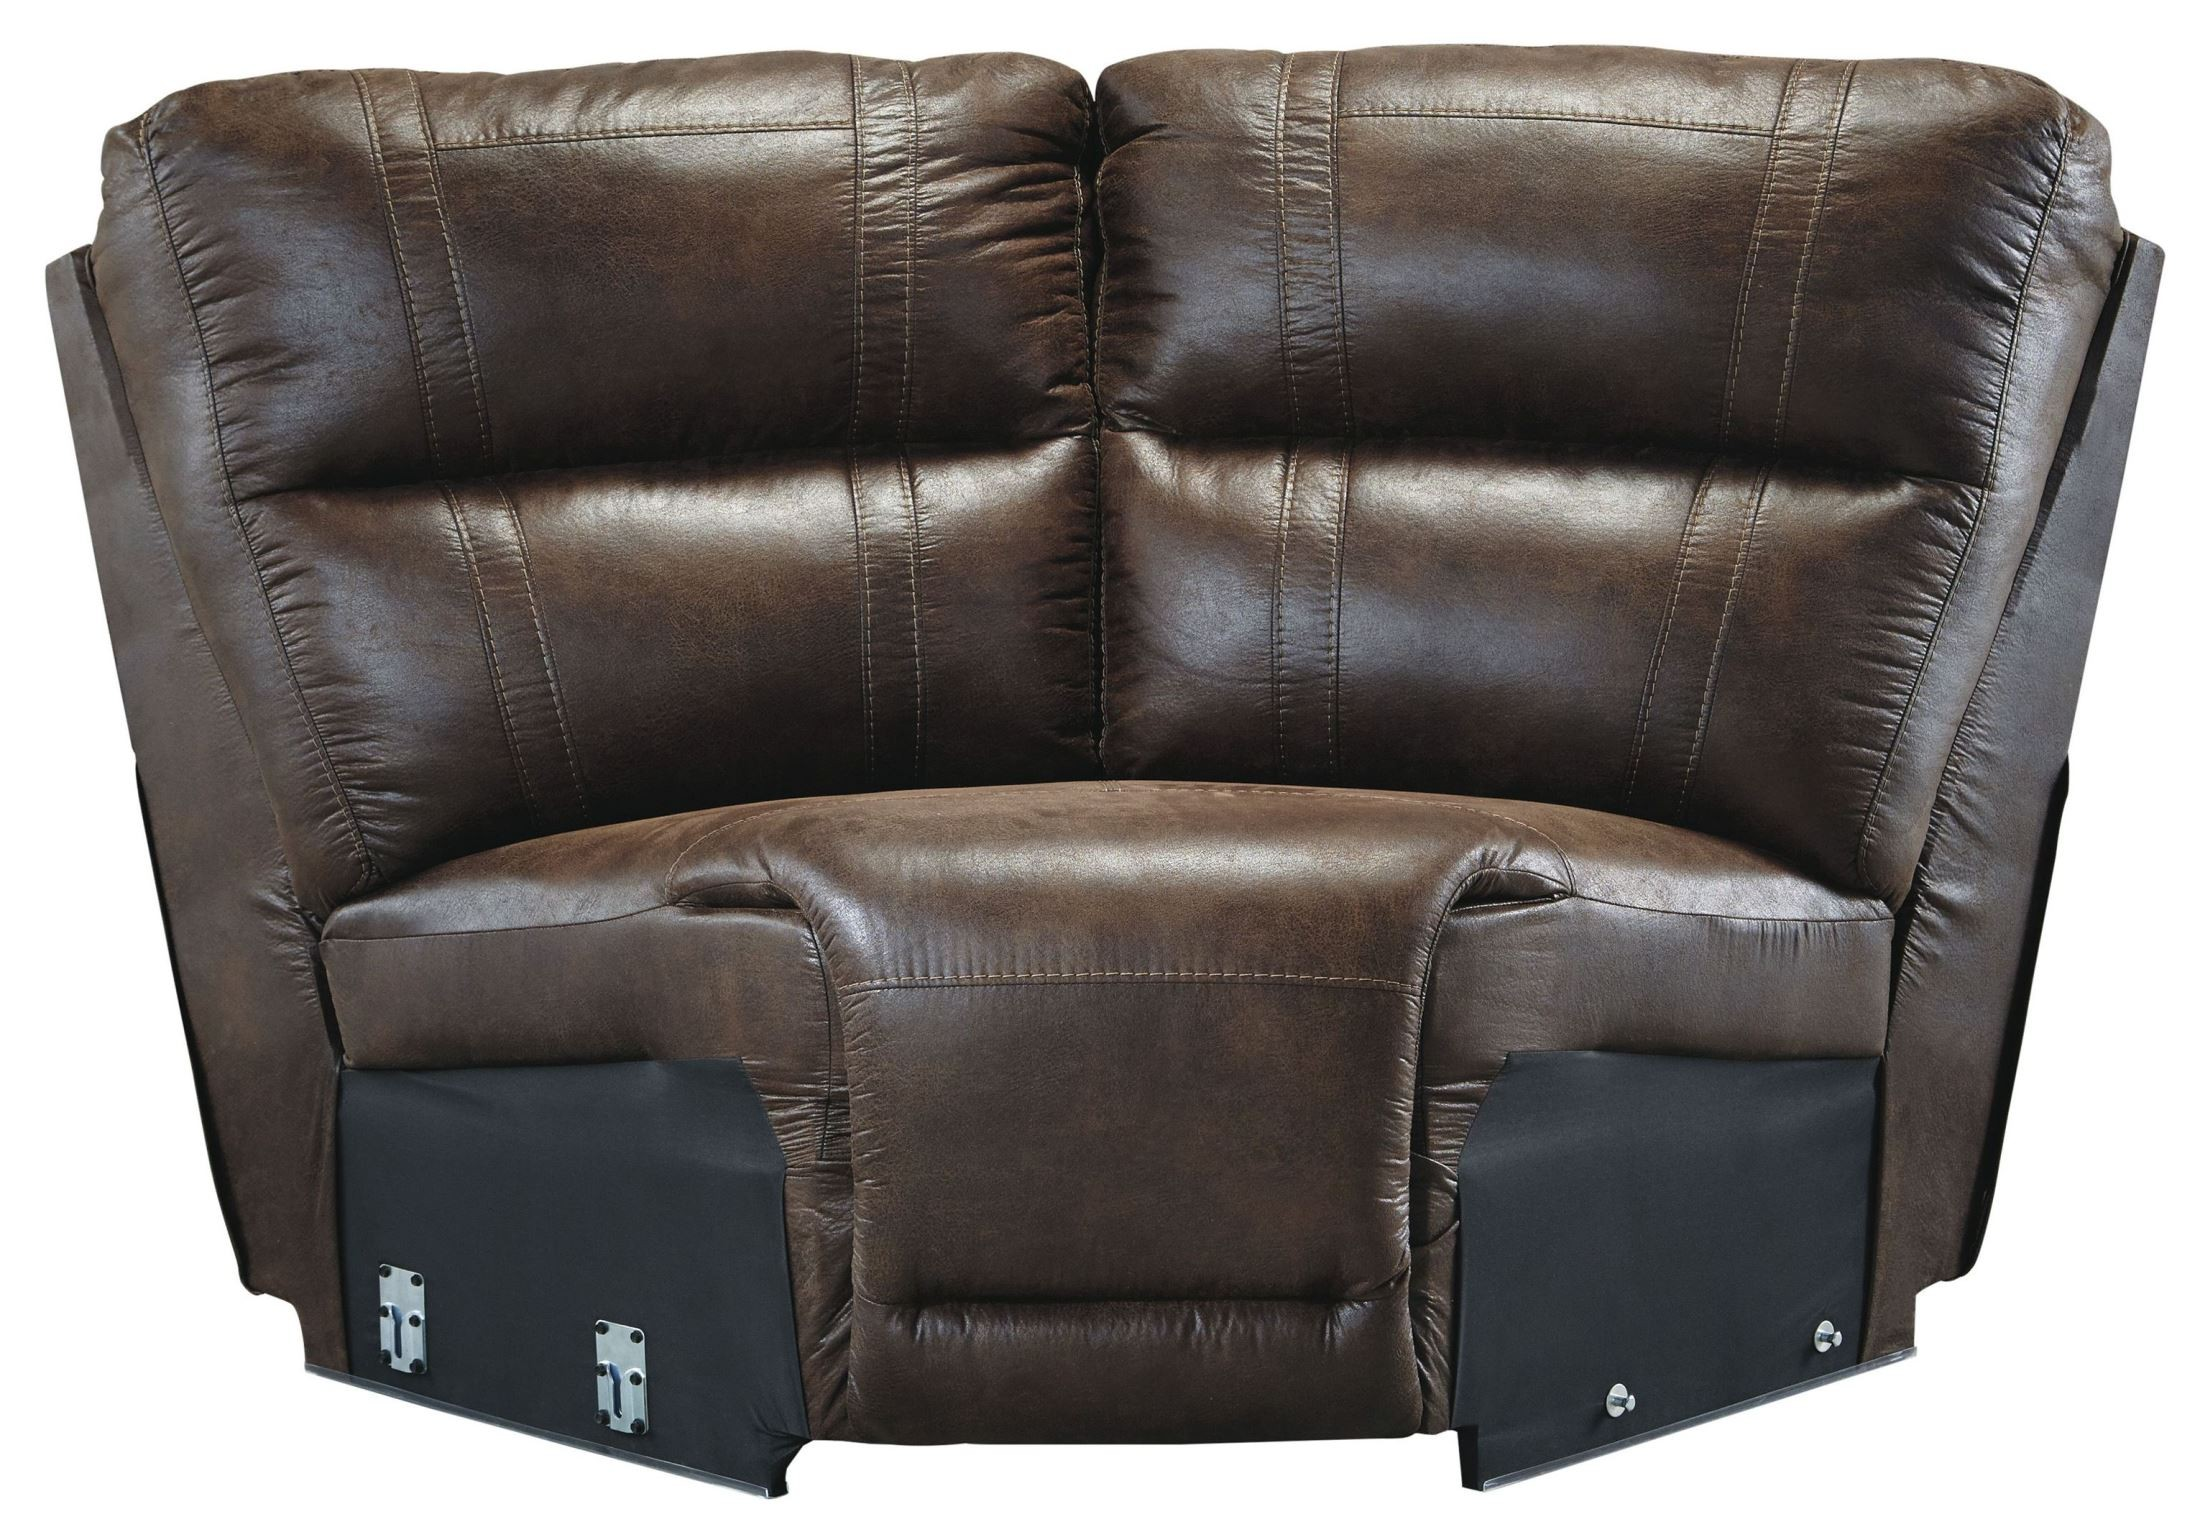 768427  sc 1 st  Coleman Furniture & Luttrell Espresso Reclining Sectional from Ashley (9310140 ... islam-shia.org